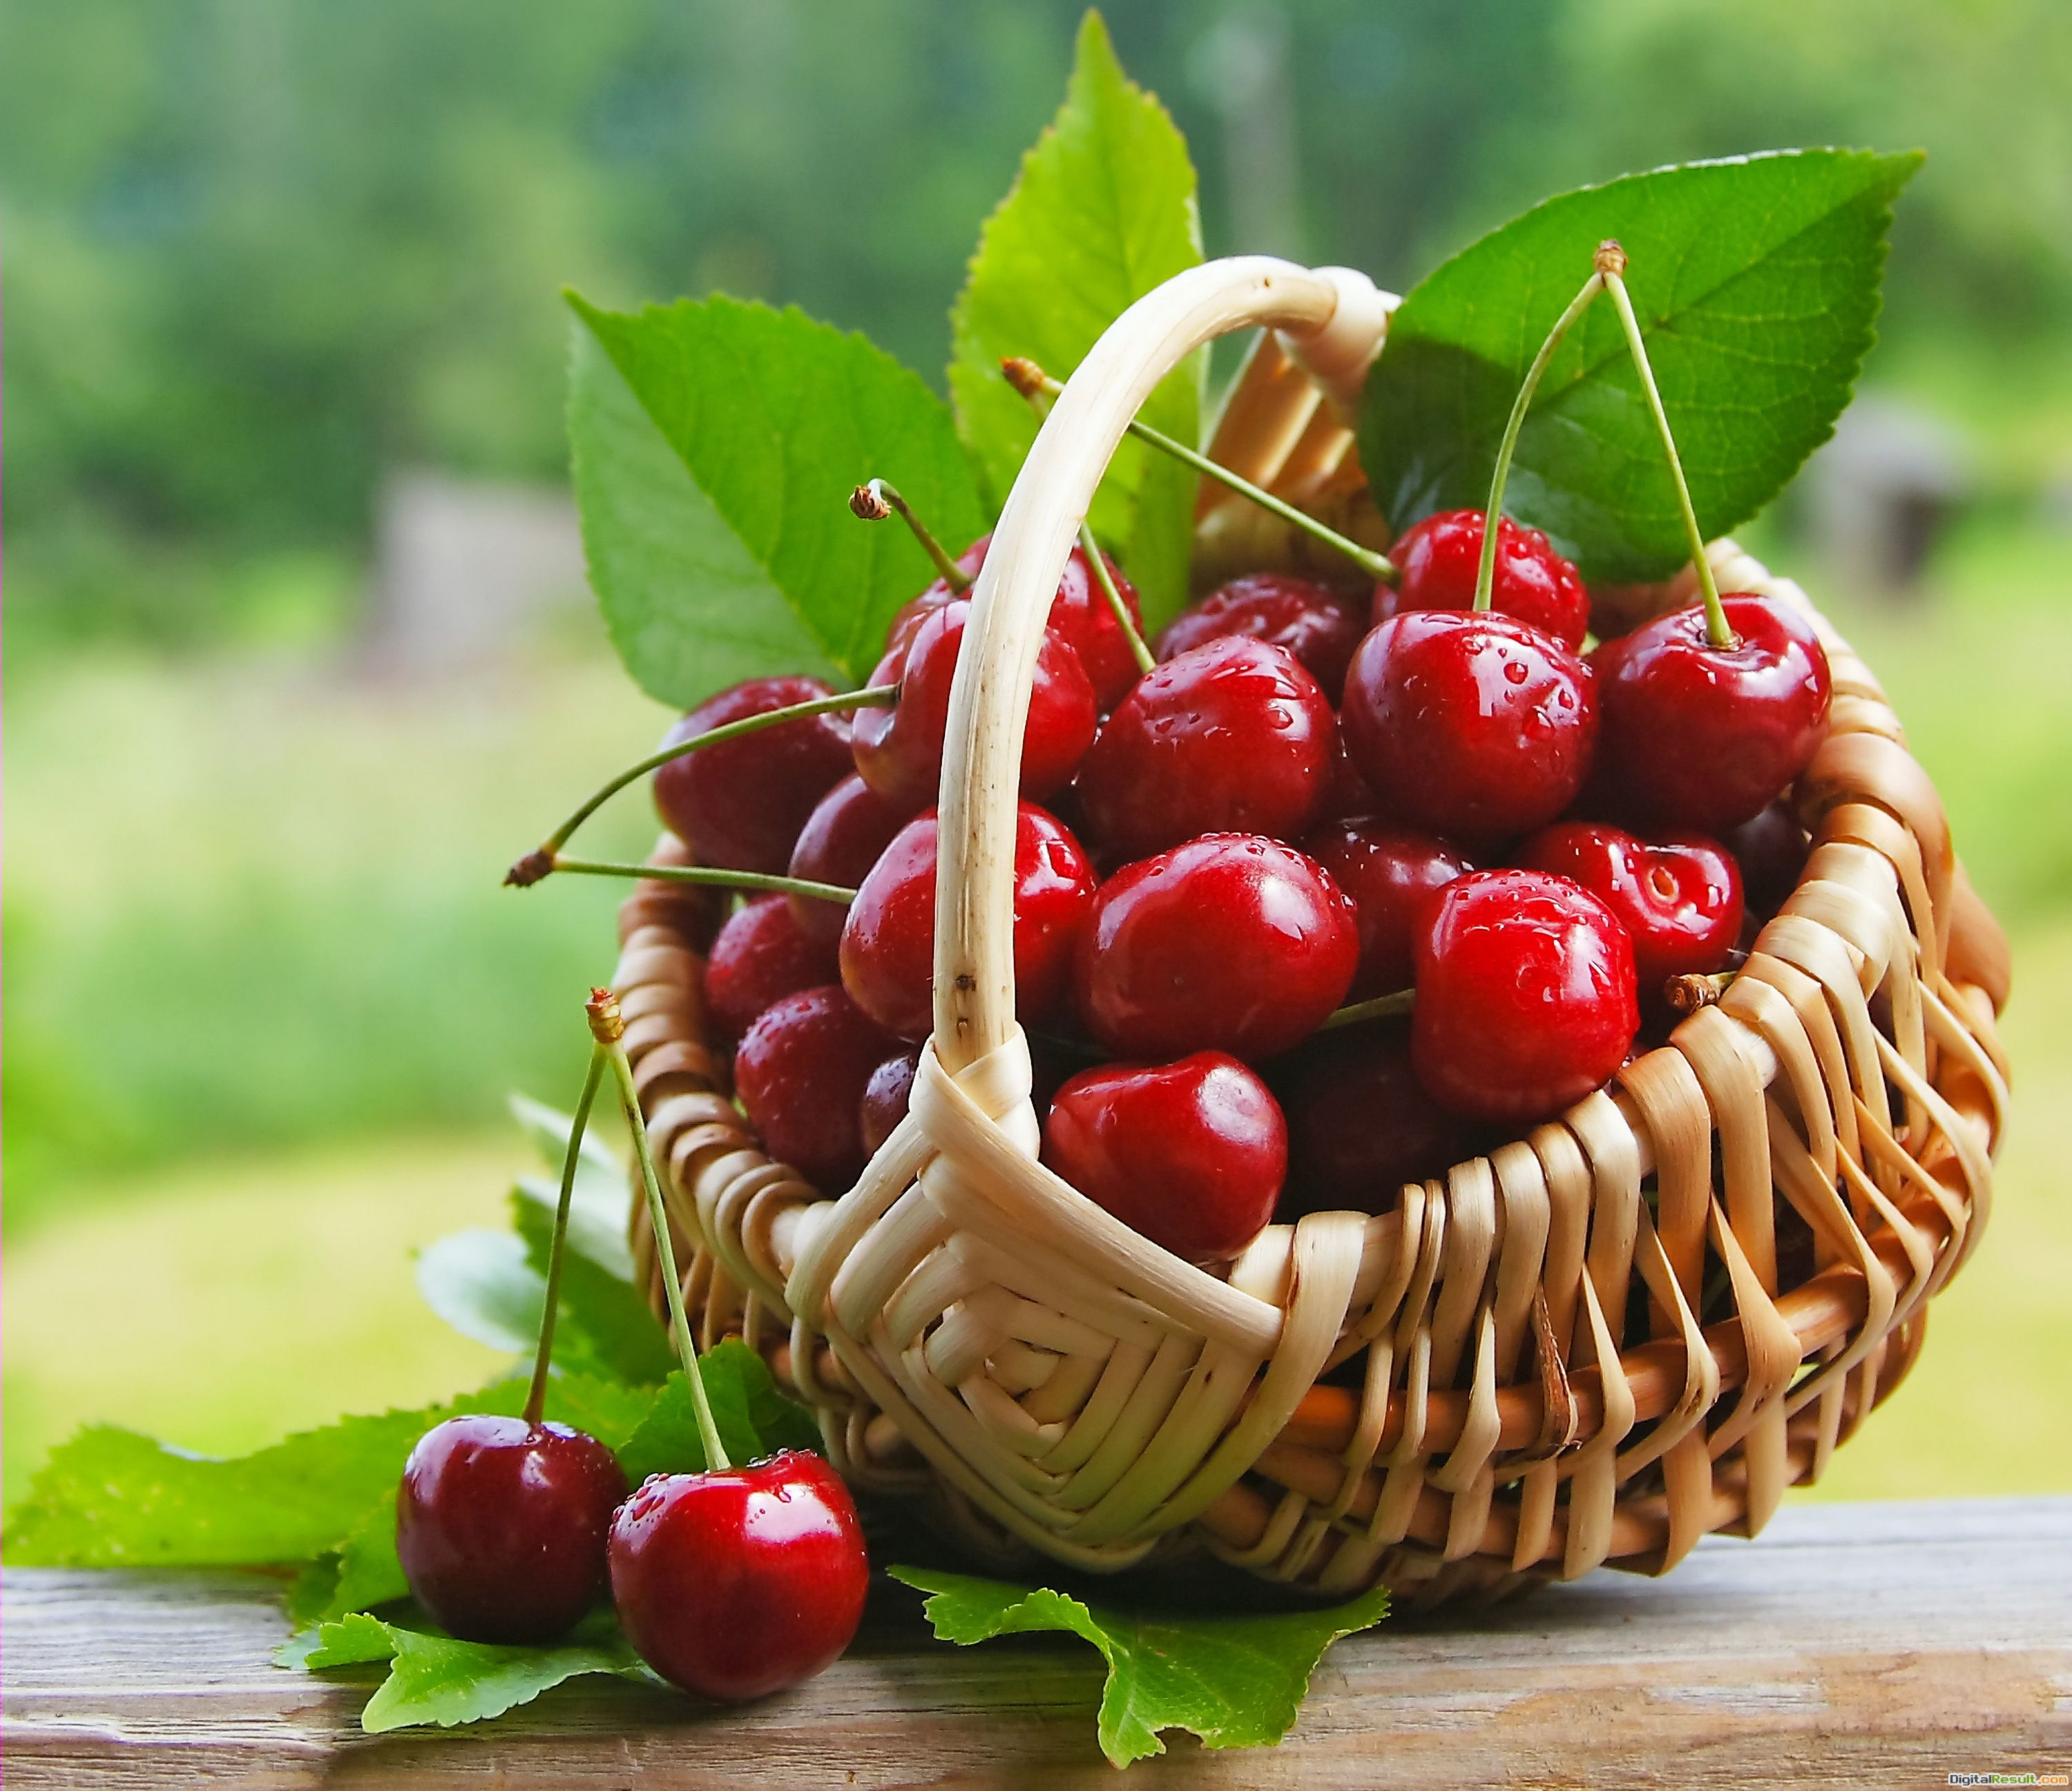 Cherry, berries, sweet, fresh, cherry, berry basket wallpapersphotos 965